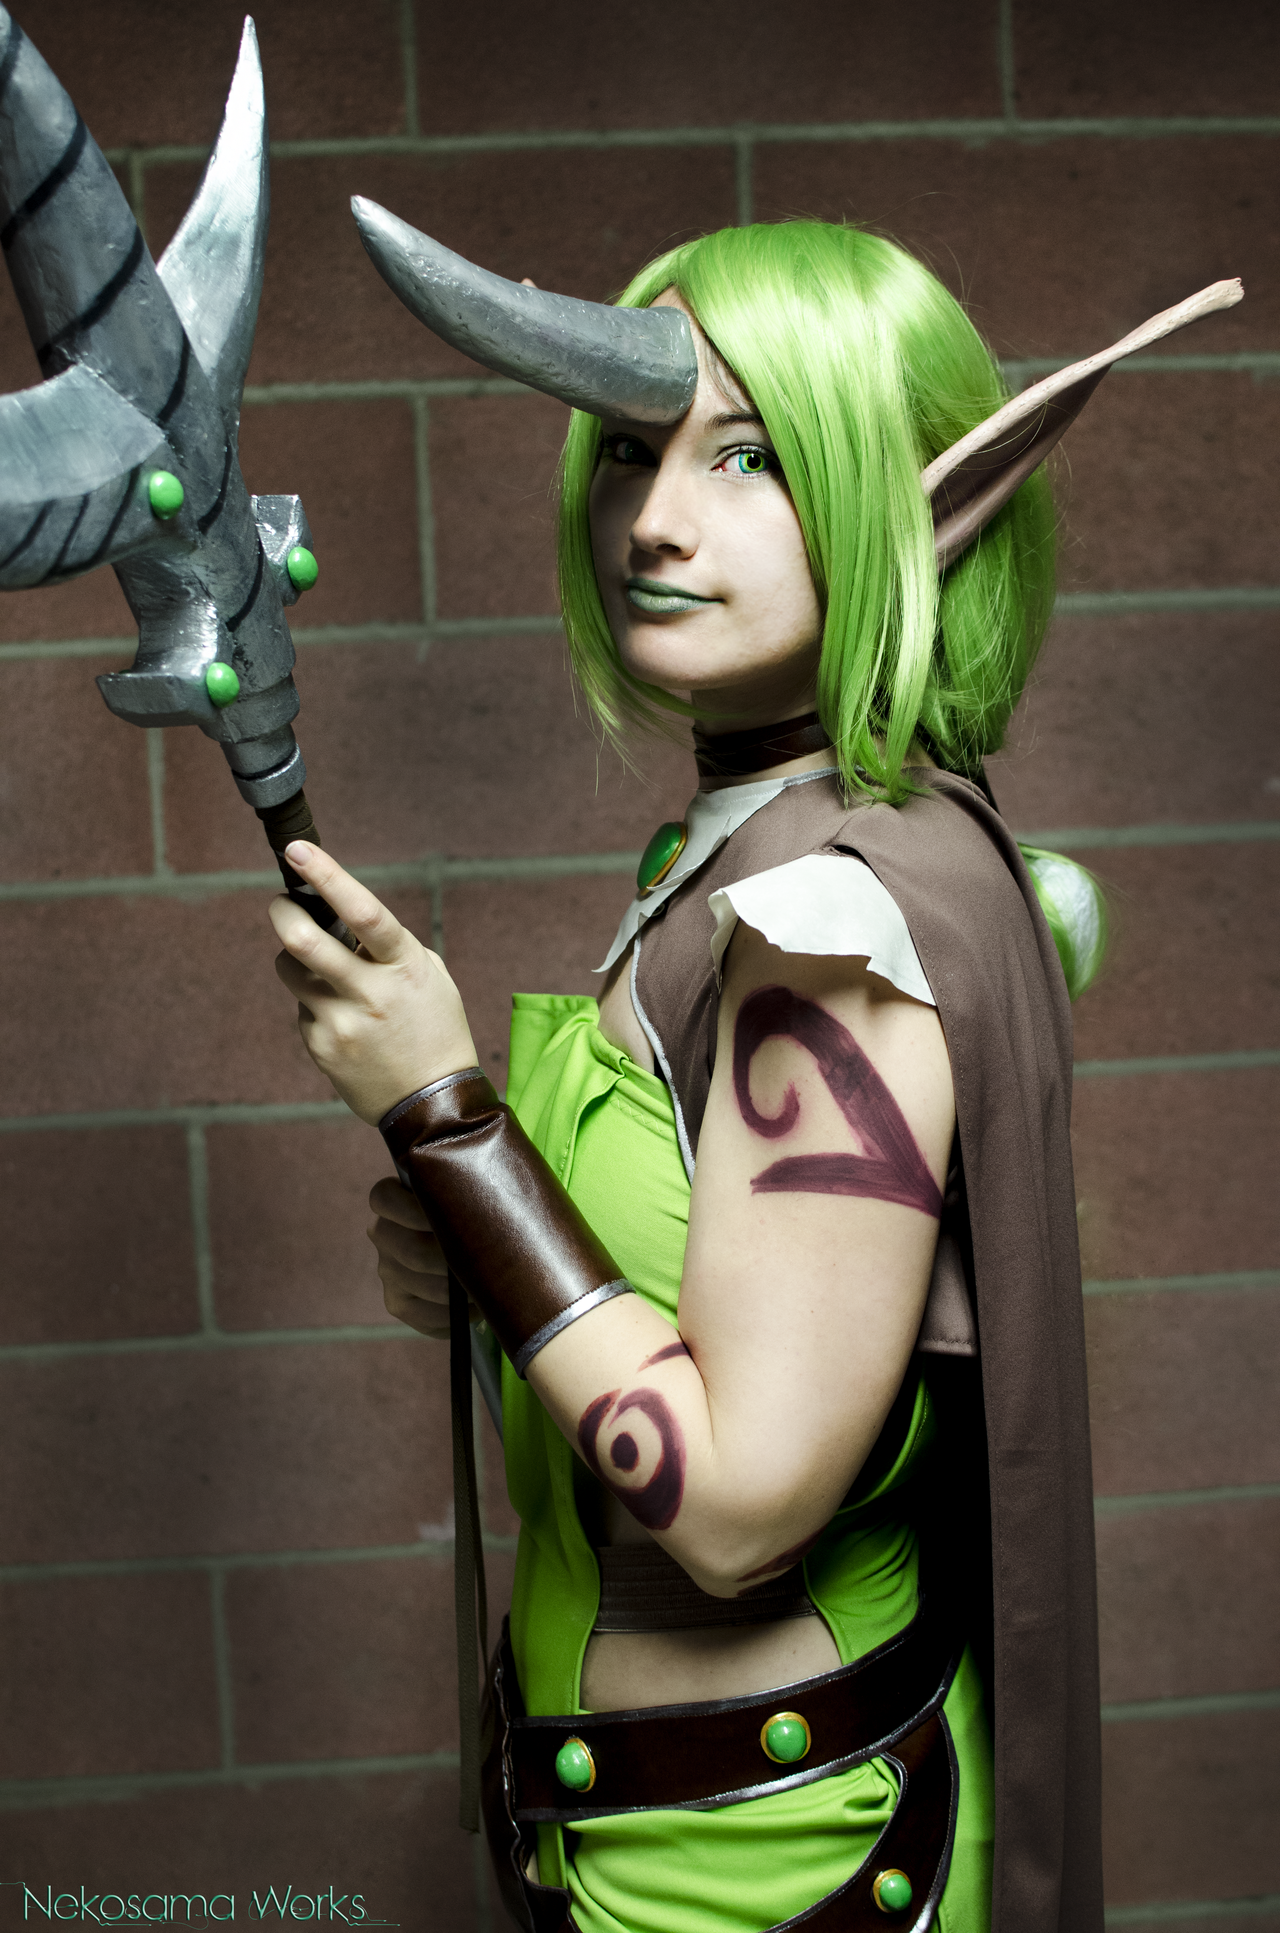 Dryad-Soraka-from-League-of-Legends-wallpaper-wp5006953